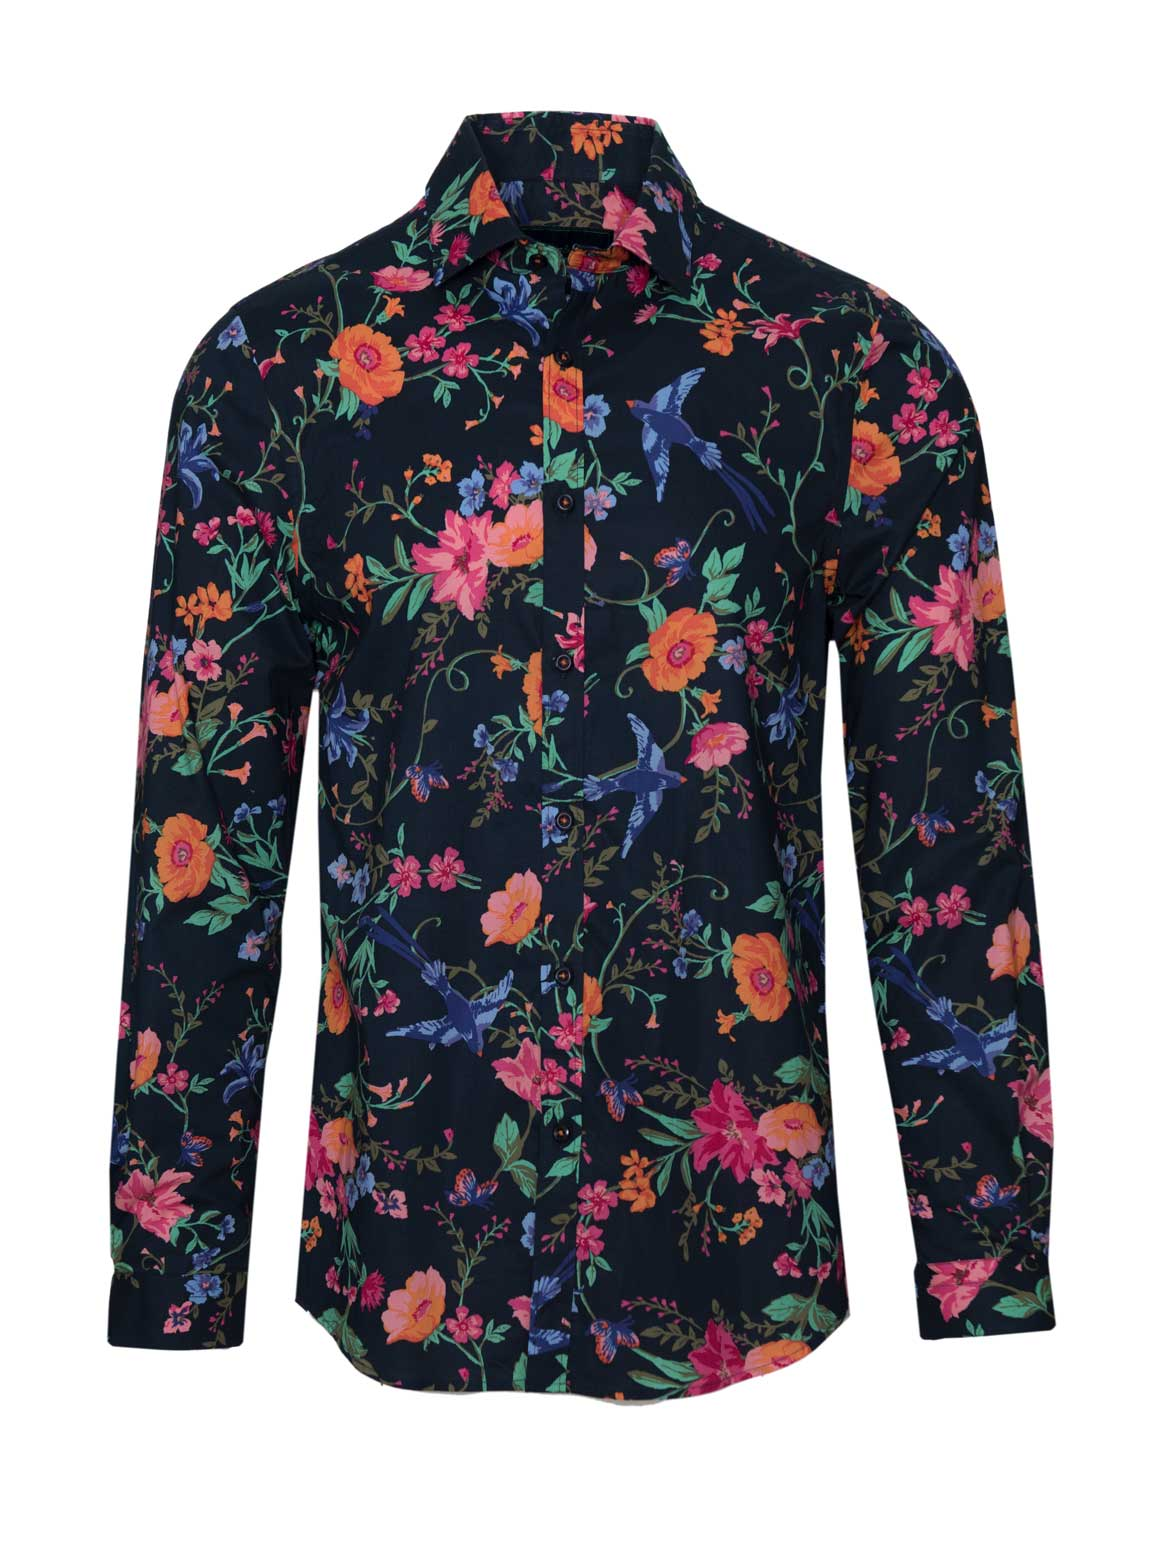 Long Sleeve Shirt - Navy & Orange Floral